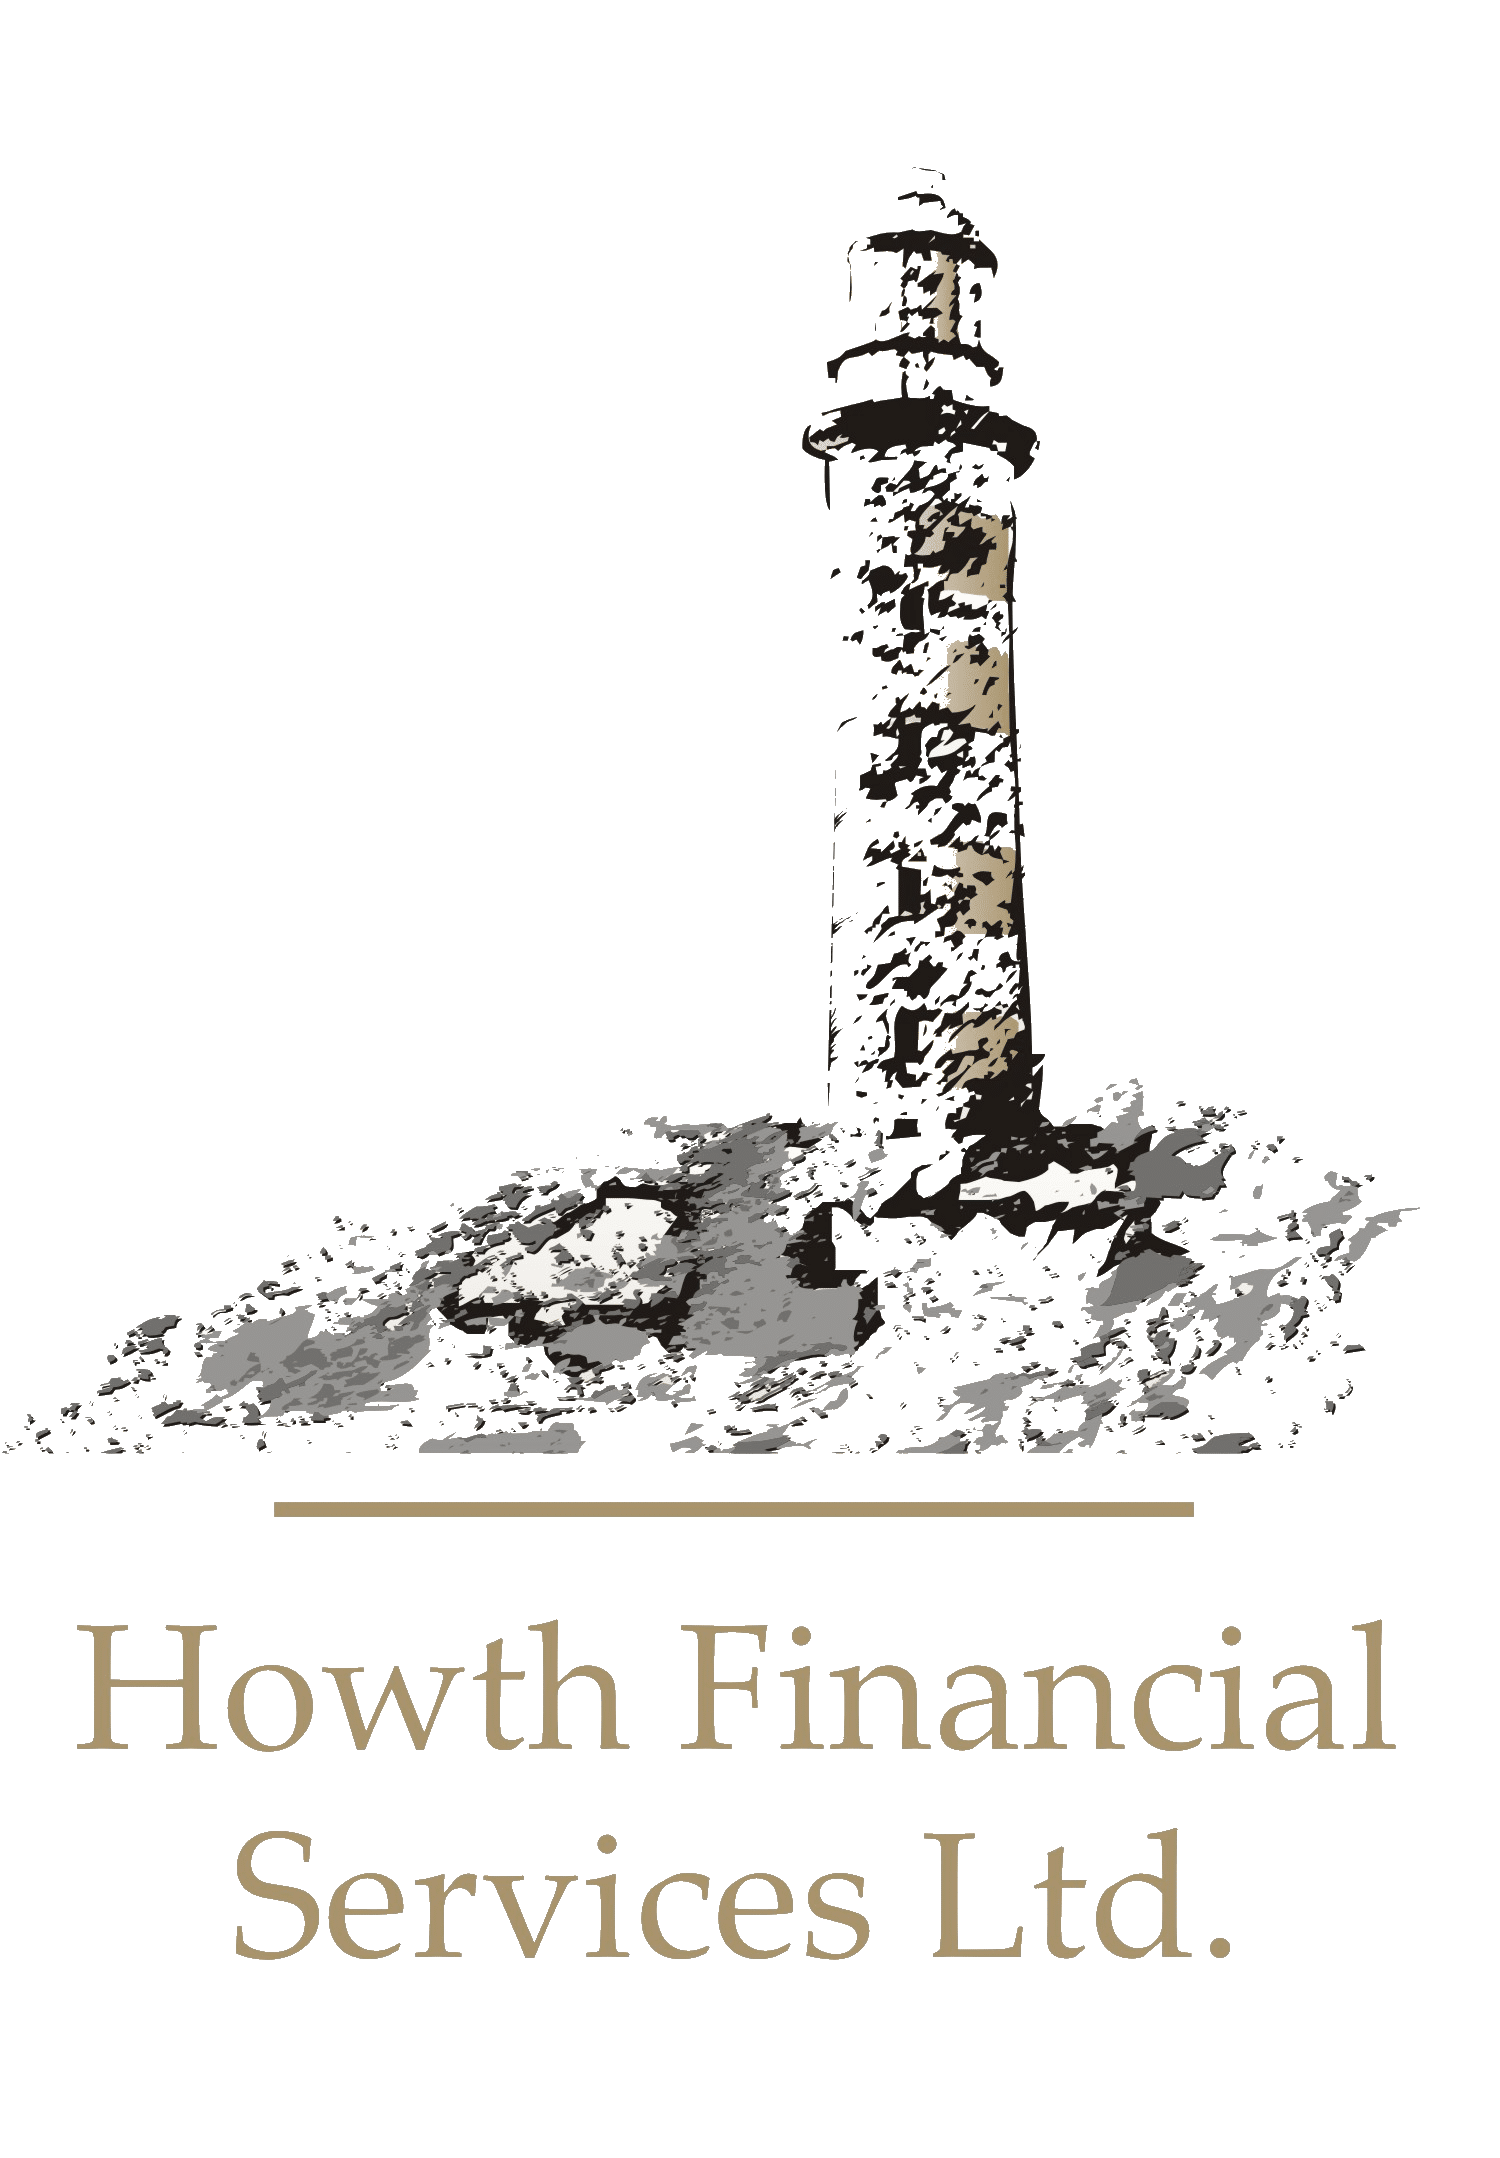 Howth Financial Services